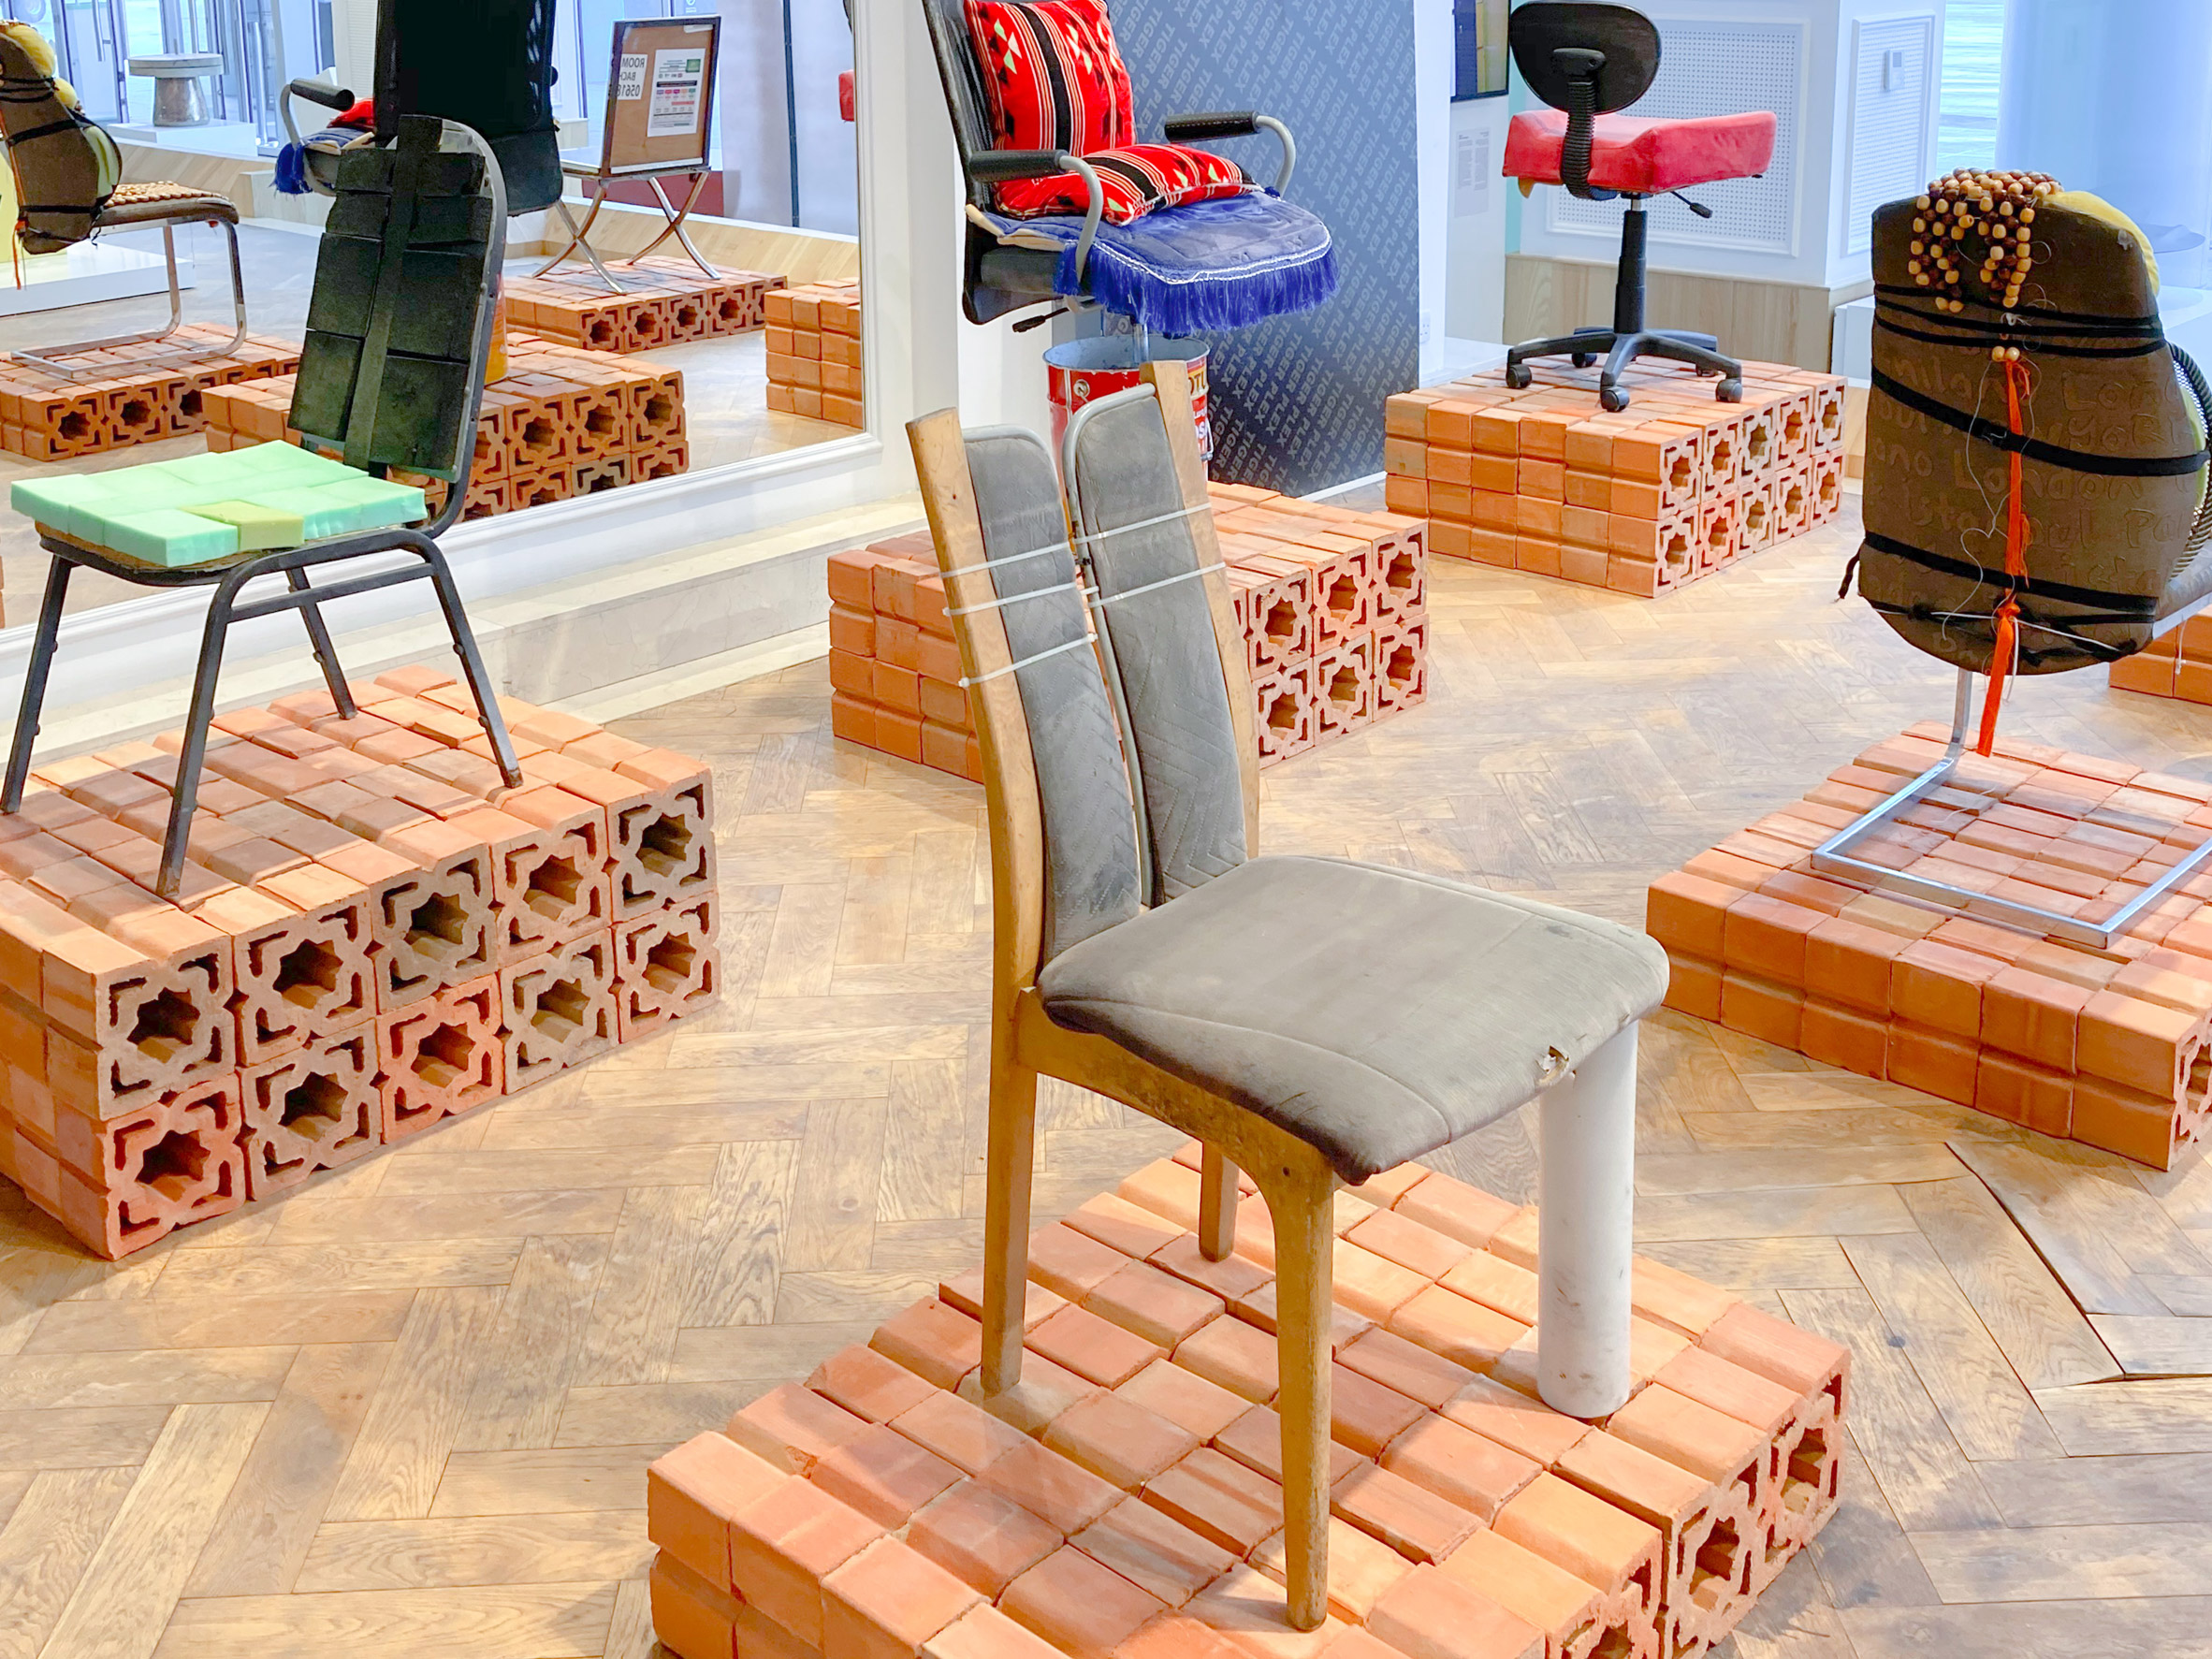 Classic Car Accessories I chair from How to be at Rest installation at Dubai Design Week